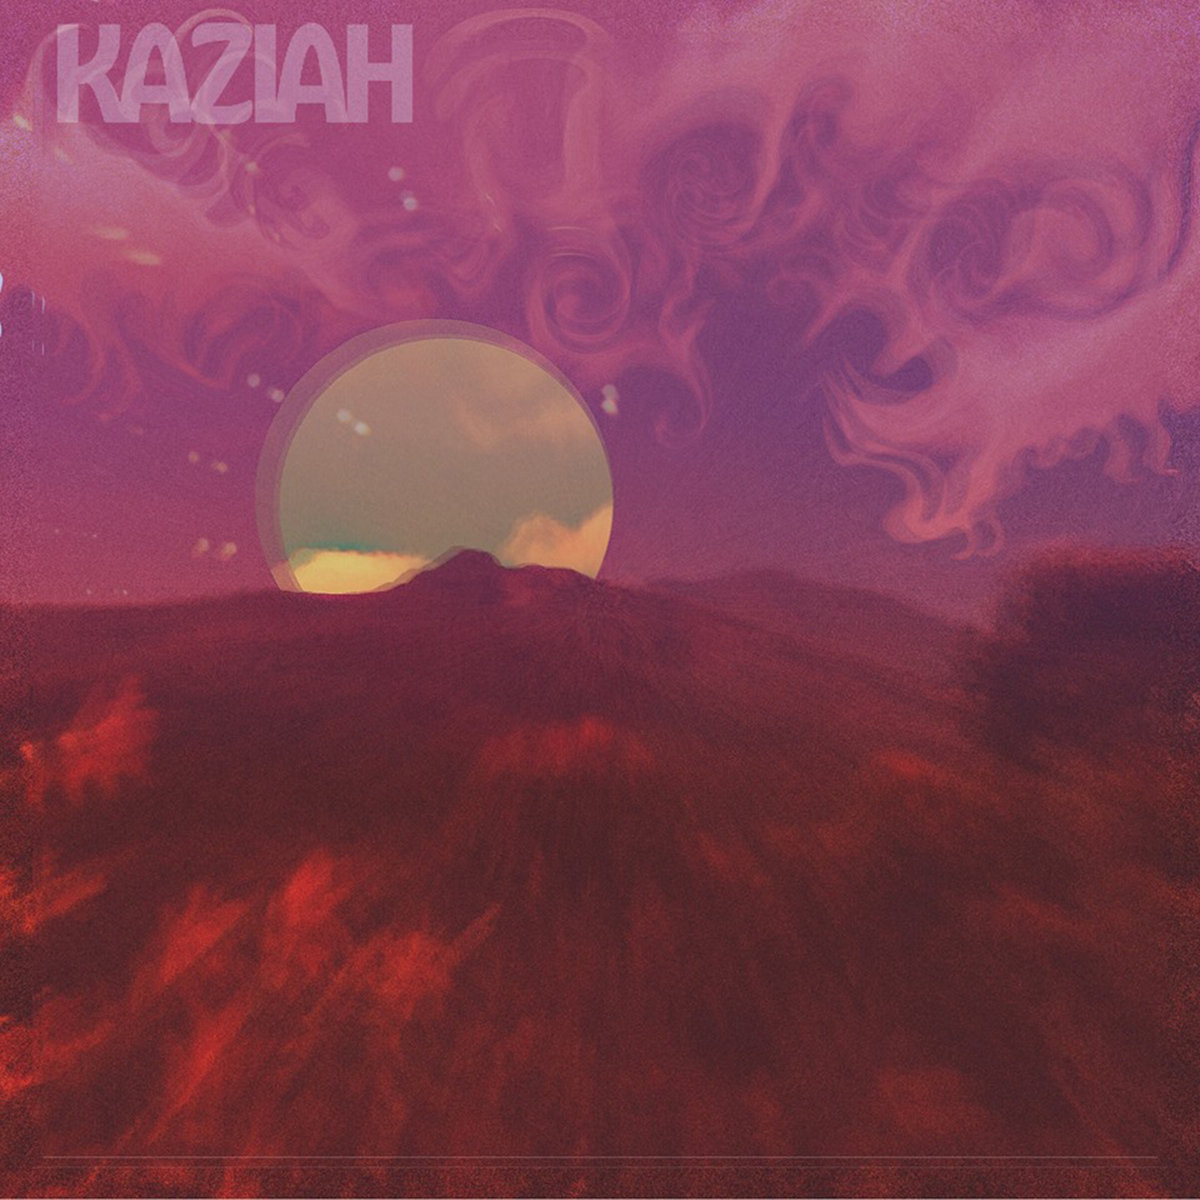 EP Review - Kaziah - blog post image